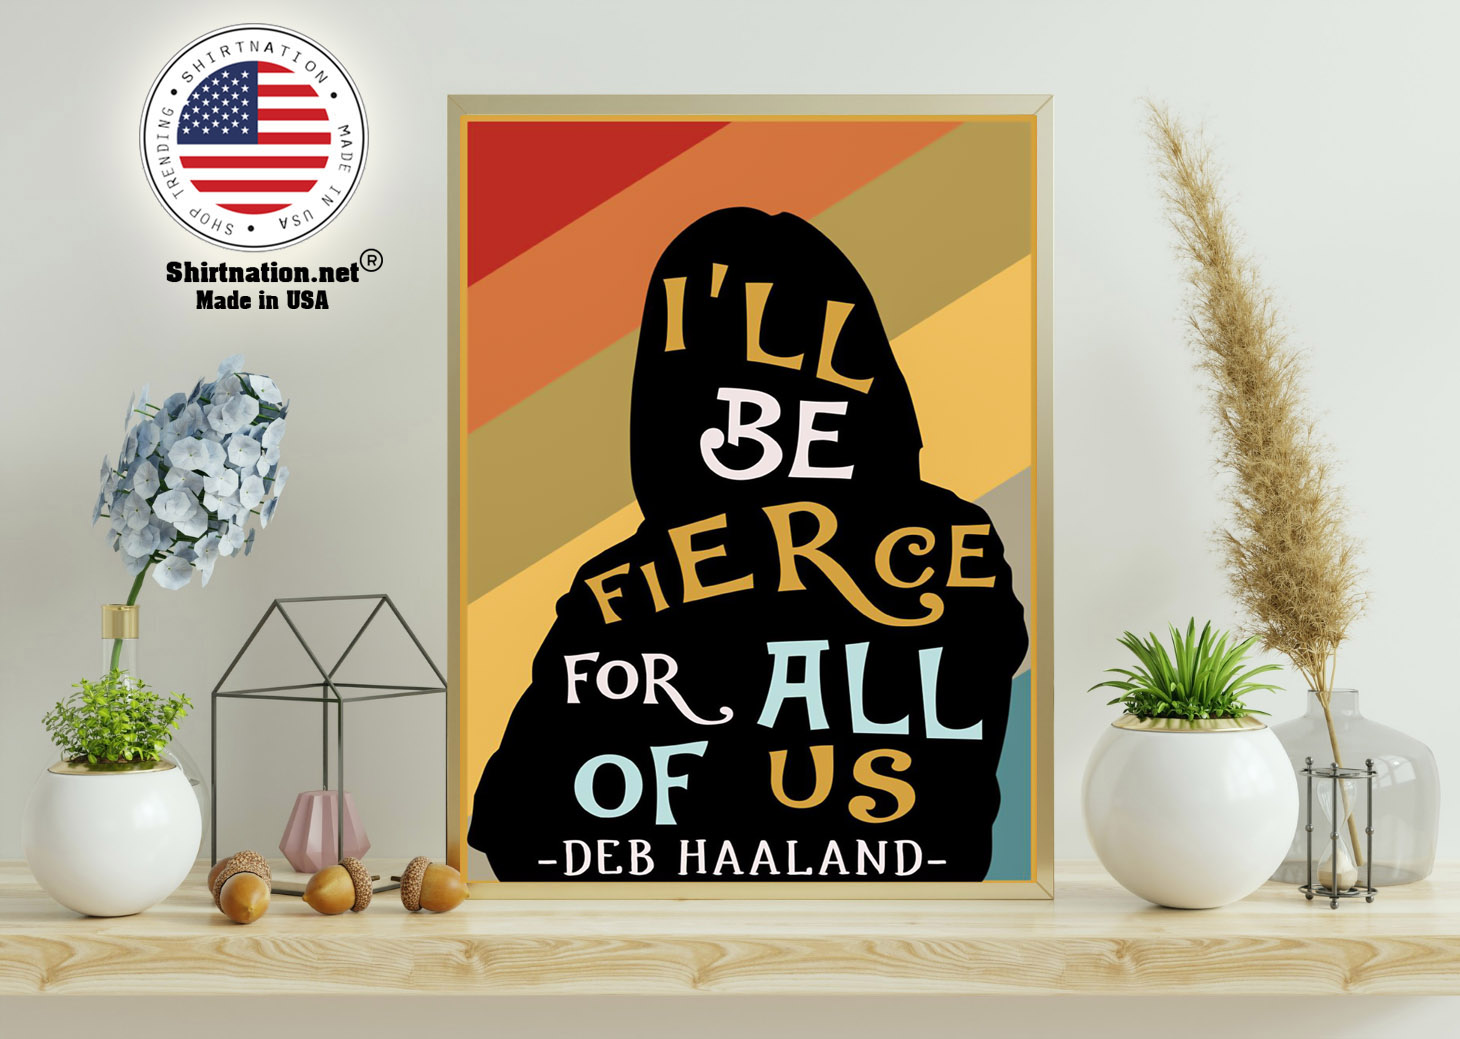 Ill be fierce for all of us deb haaland poster 11